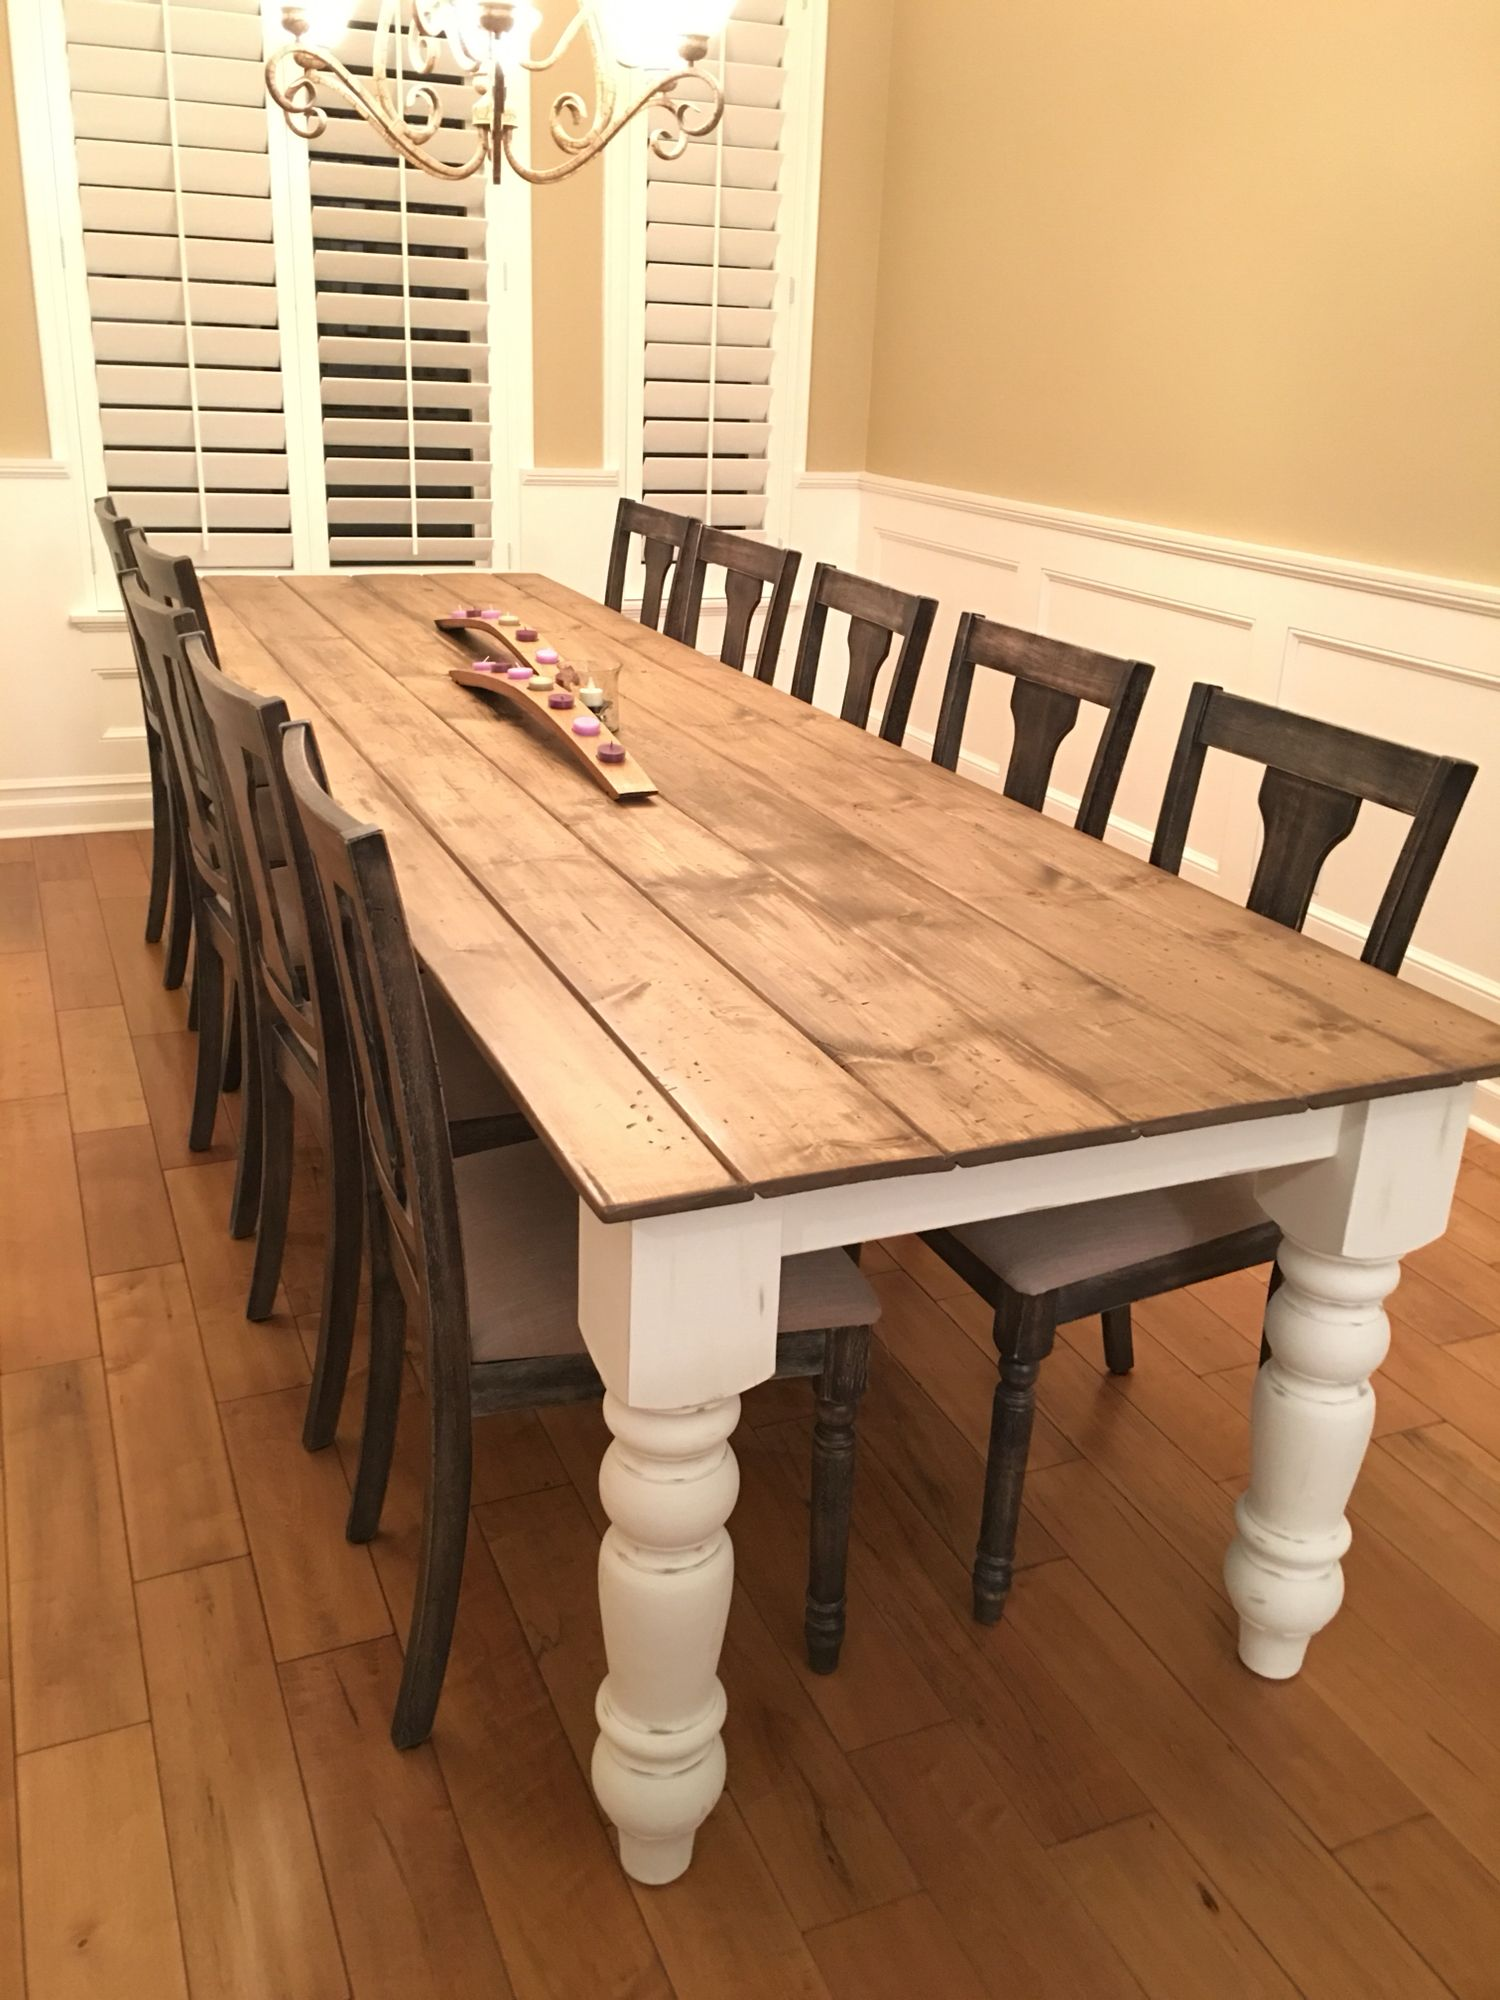 Diy Farmhouse Table My Husband Made